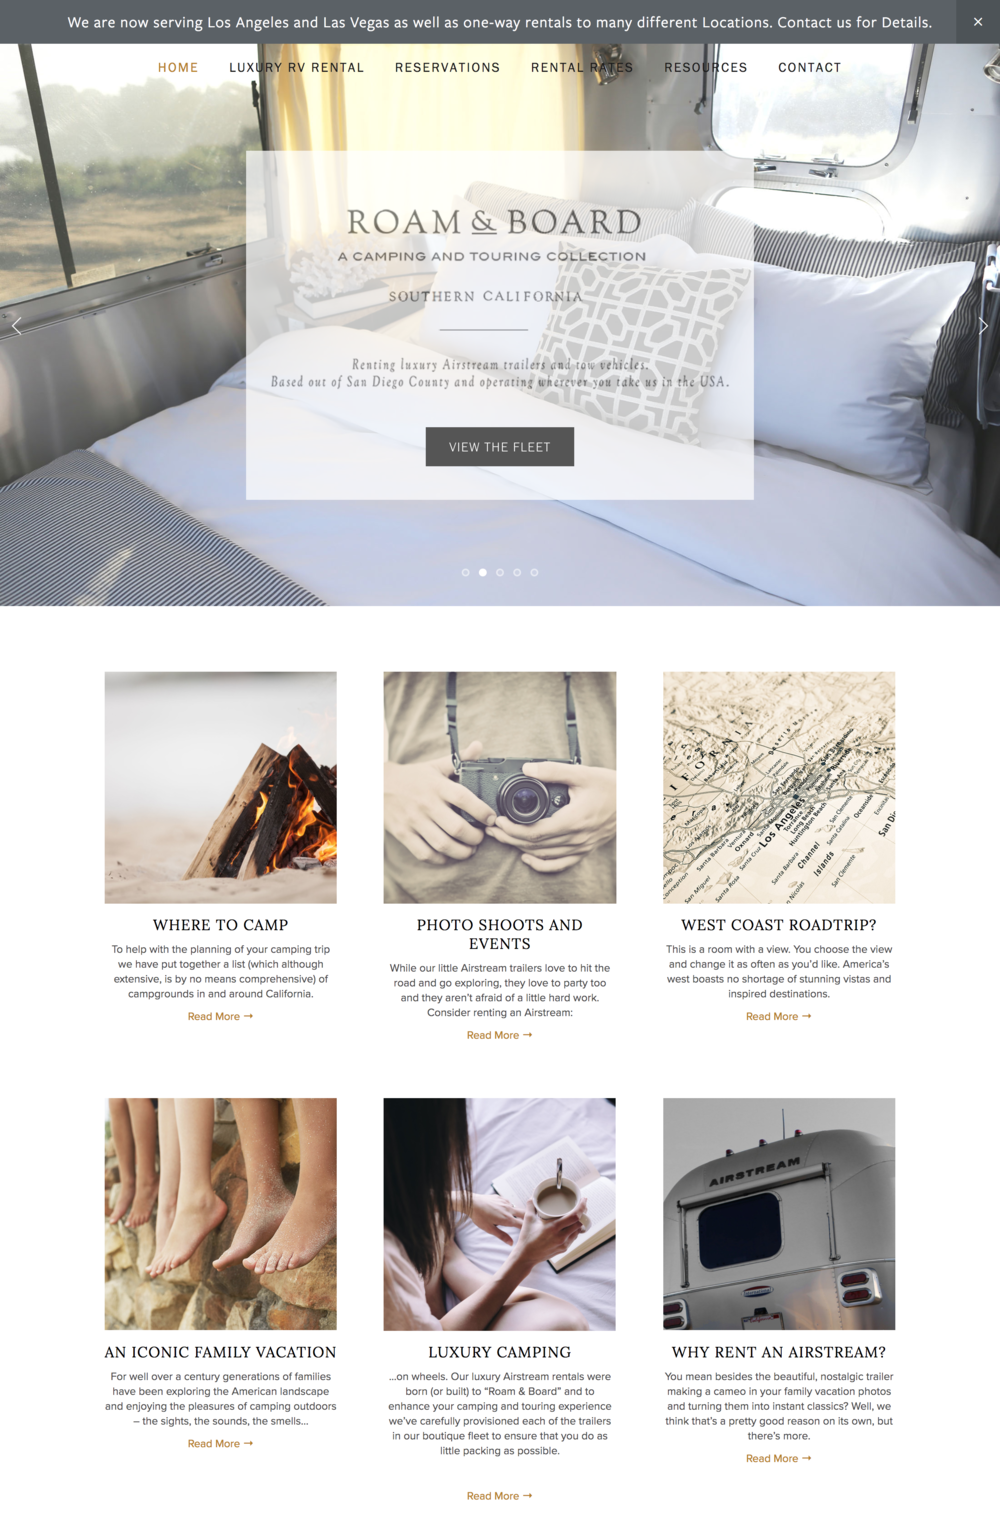 Room and Board Travel Website